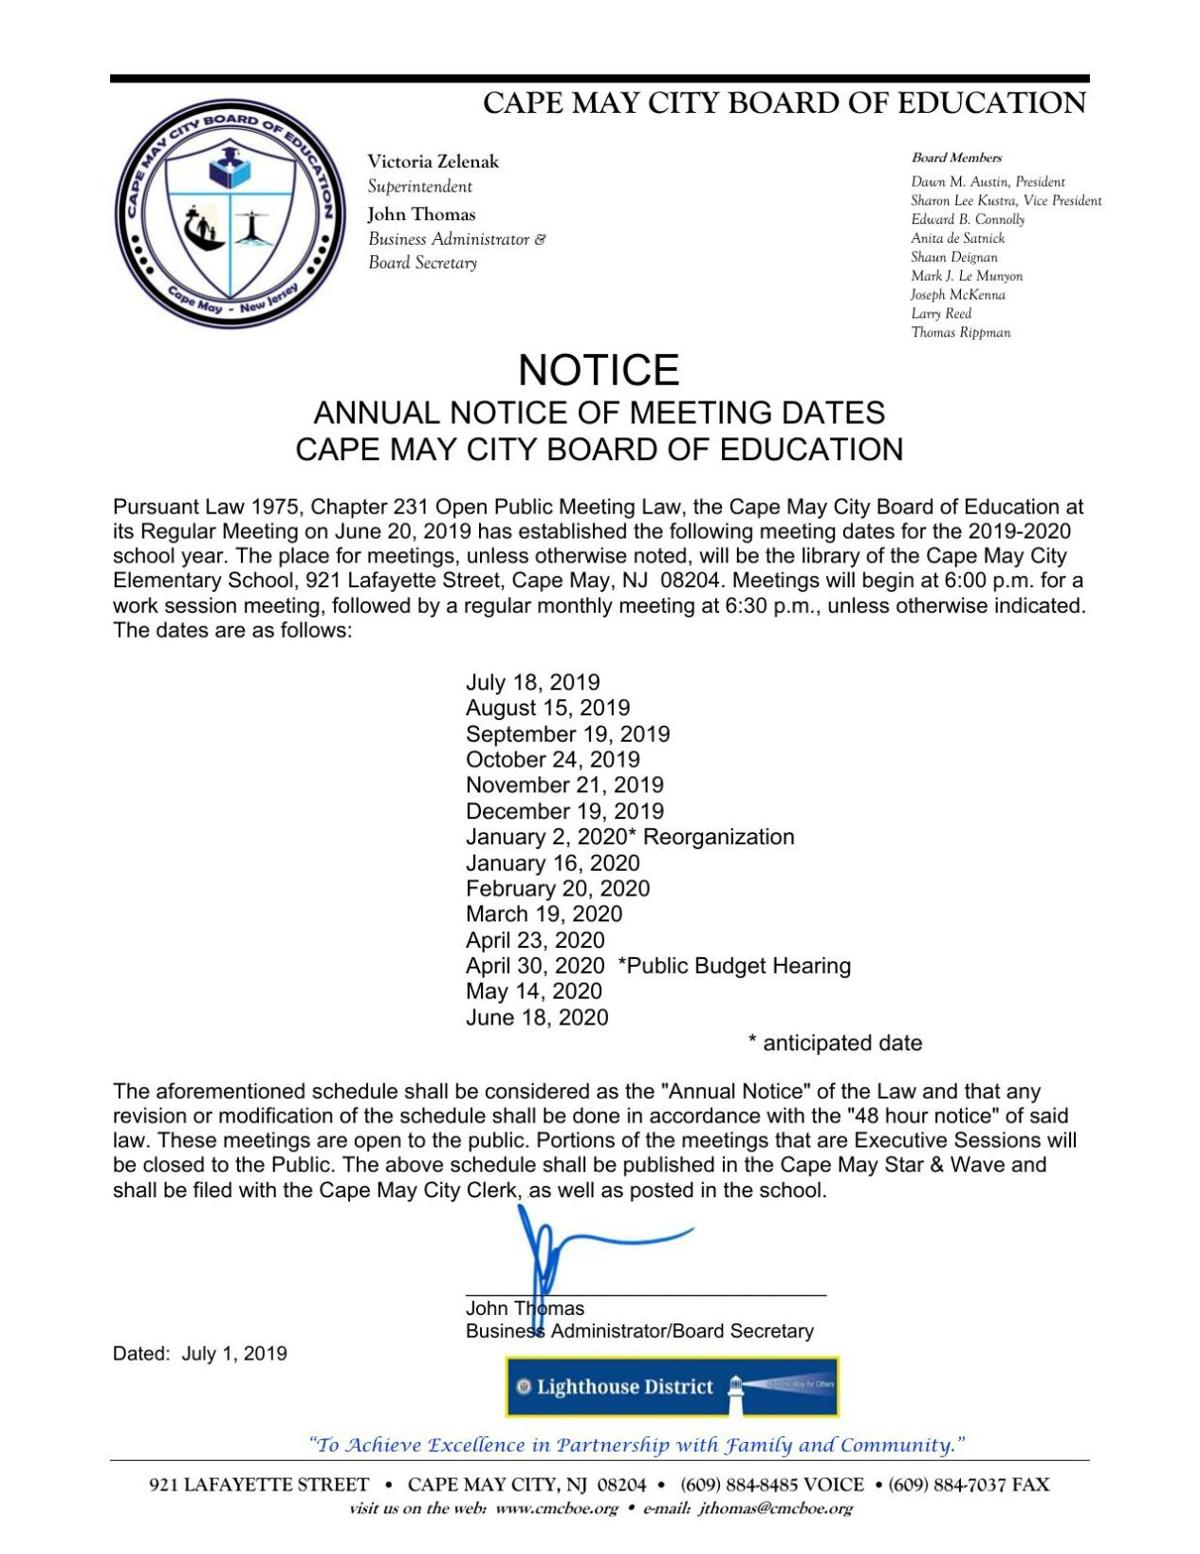 Cape May City Board of Education Notice of Meeting Dates